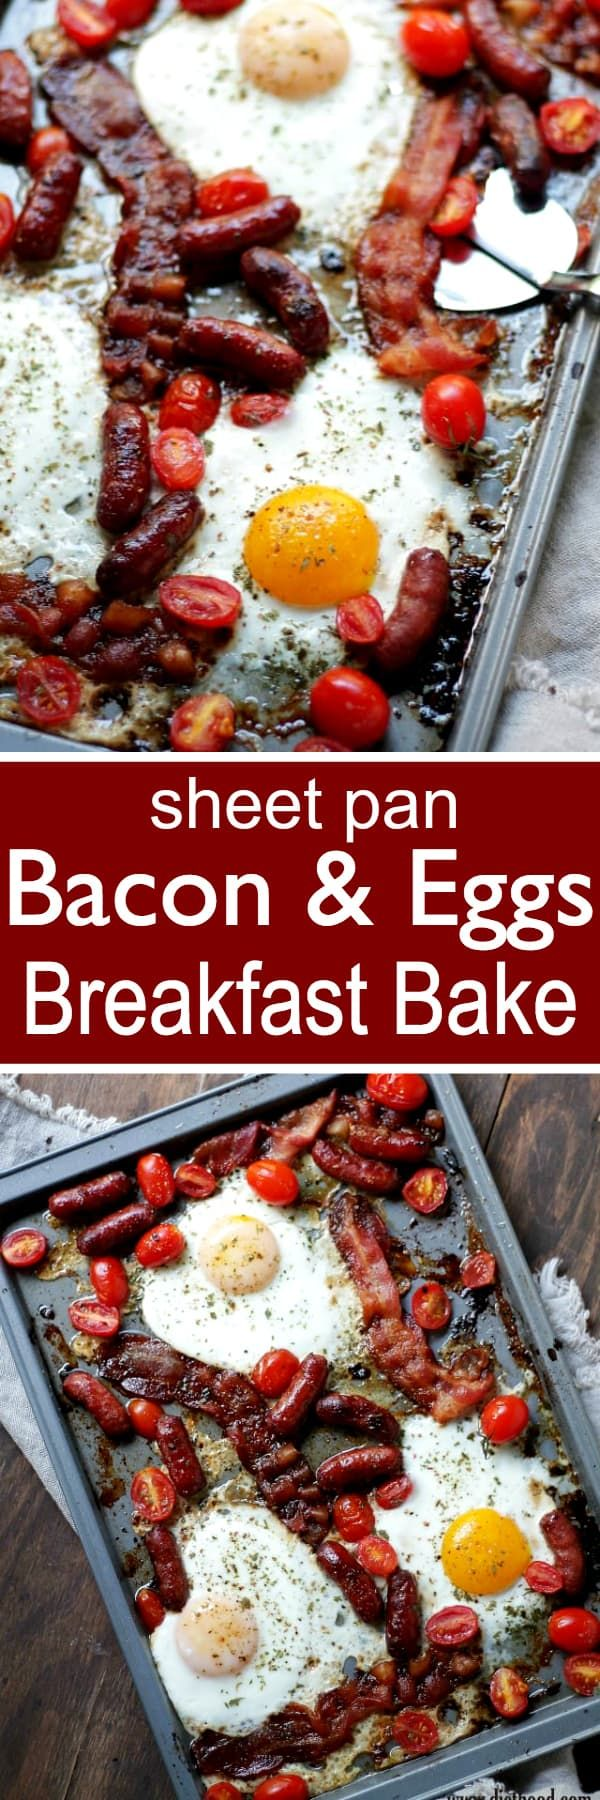 Bacon and Eggs Breakfast Bake - Warm and delicious one sheet pan breakfast bake with eggs, bacon, sausage and tomatoes. Just your all-time favorite breakfast ingredients on one sheet pan baked in the oven.